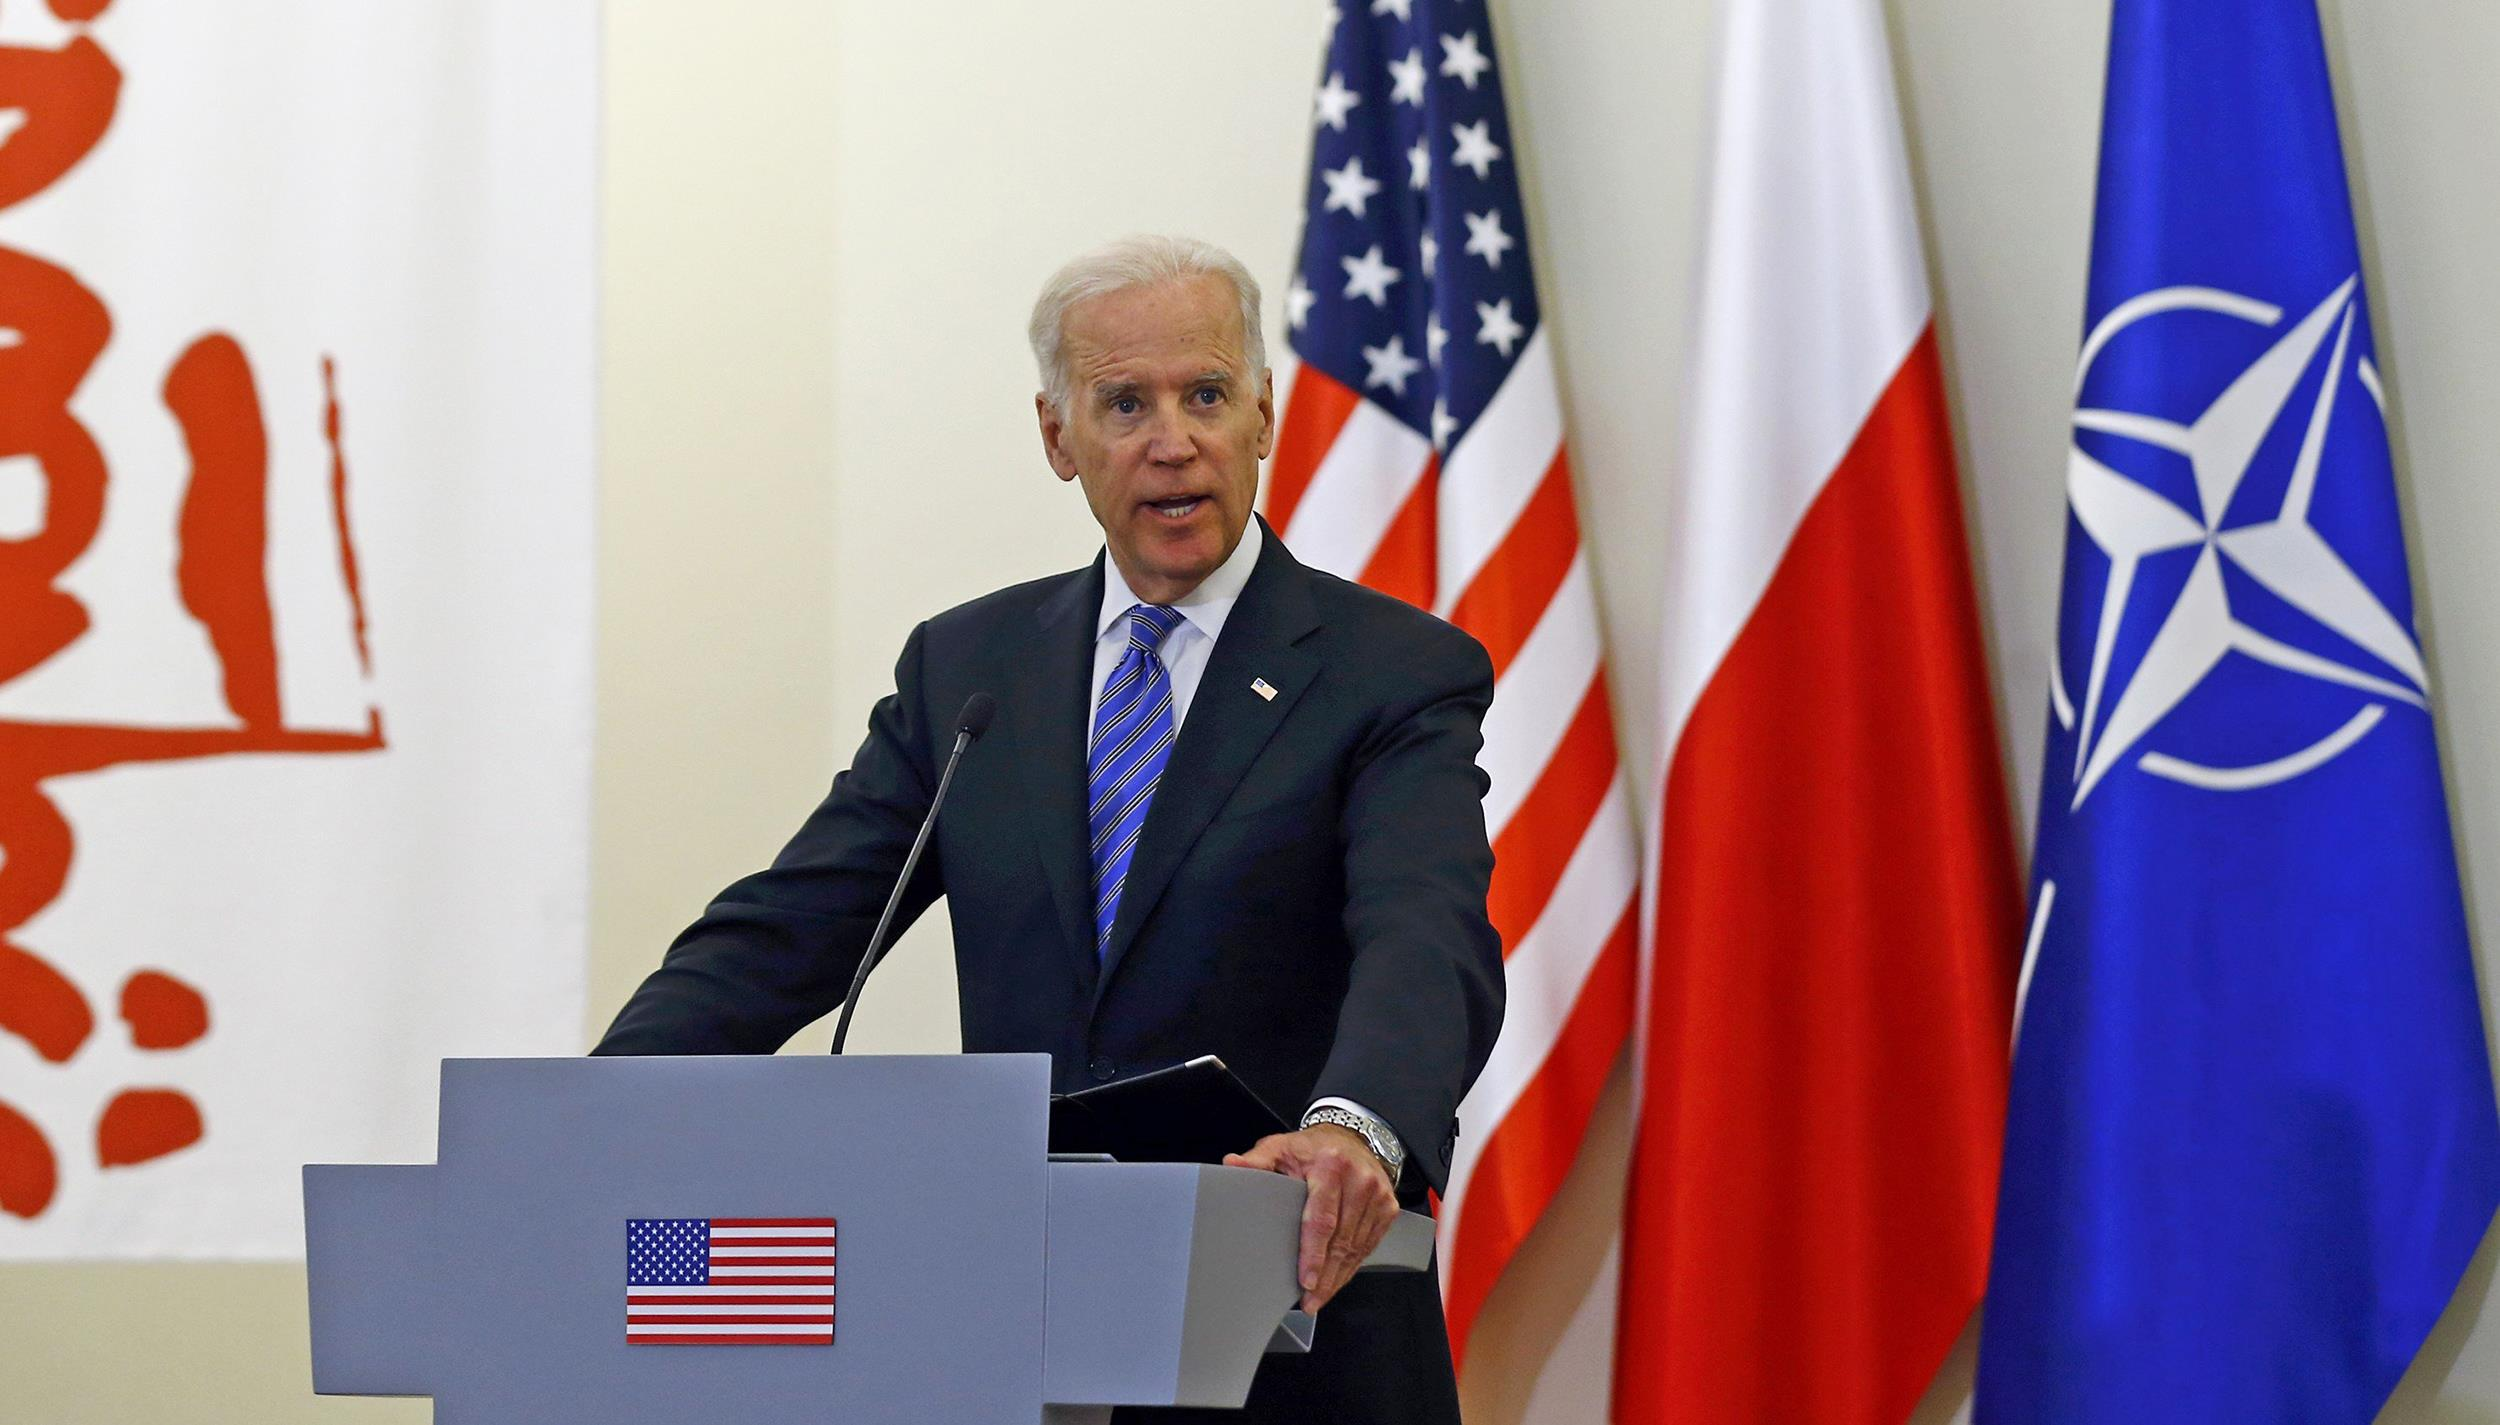 Image: U.S. Vice President Biden addresses to media after meeting Polish President Komorowski in Warsaw